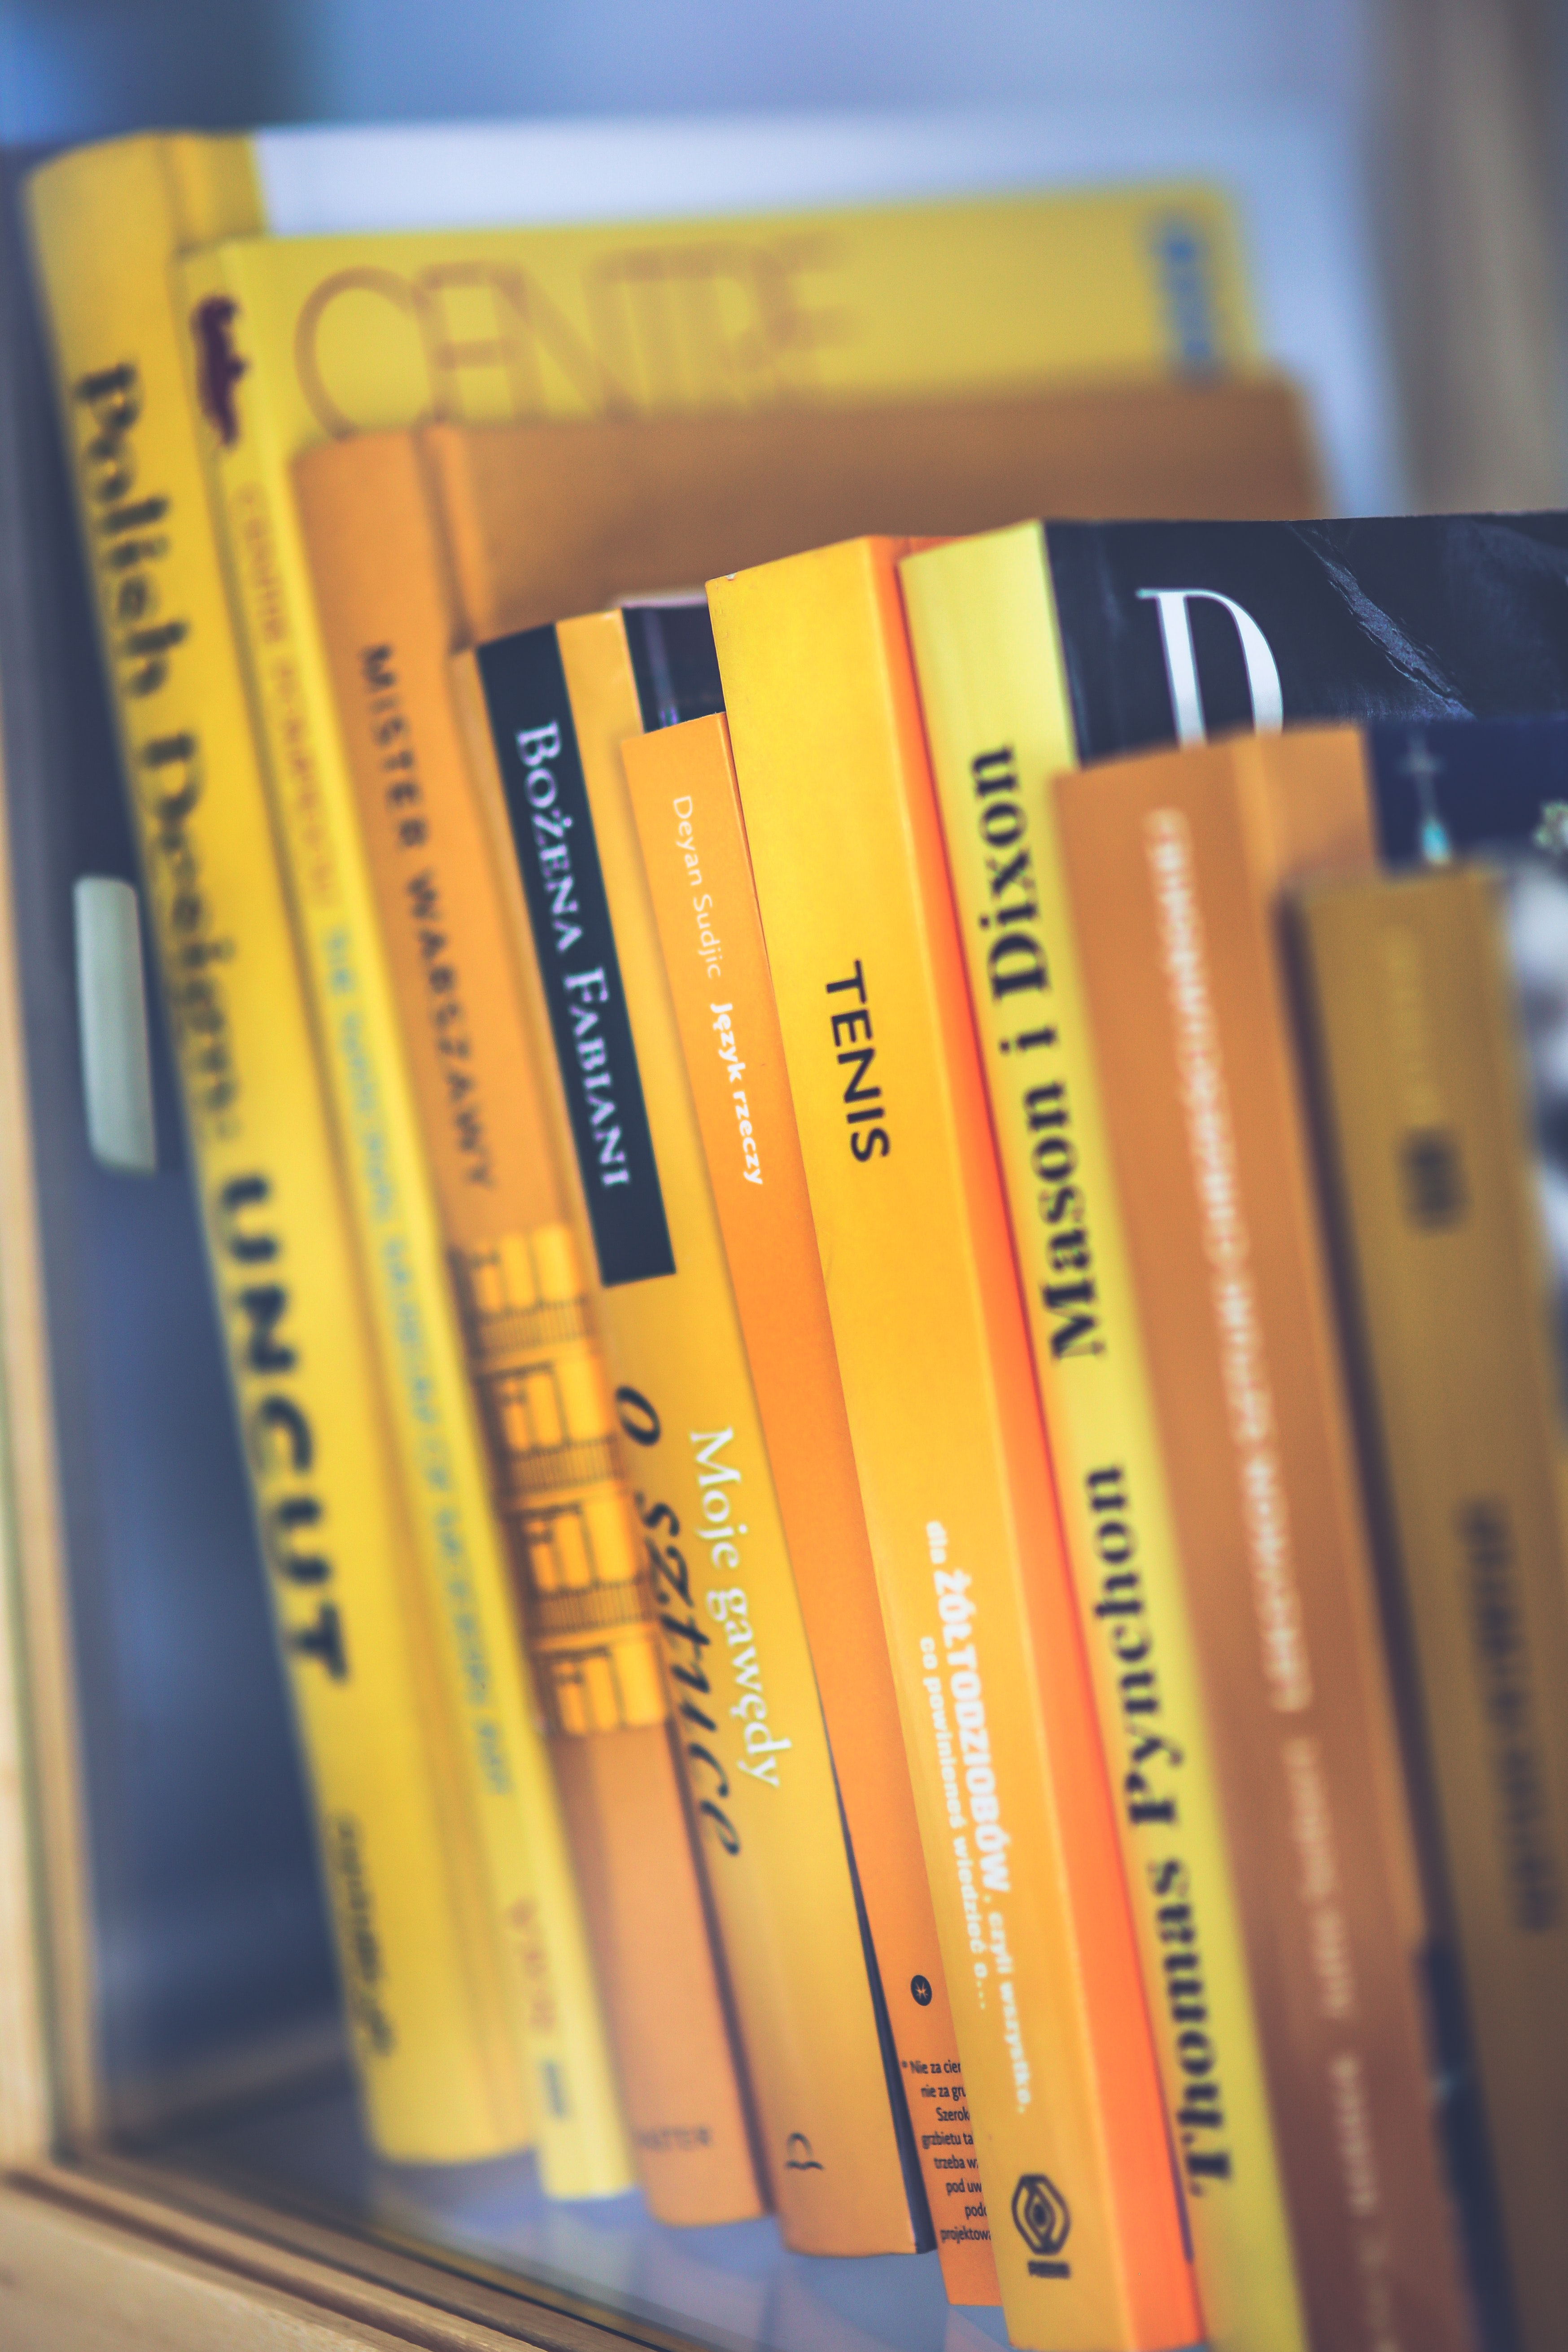 Only yellow books photo